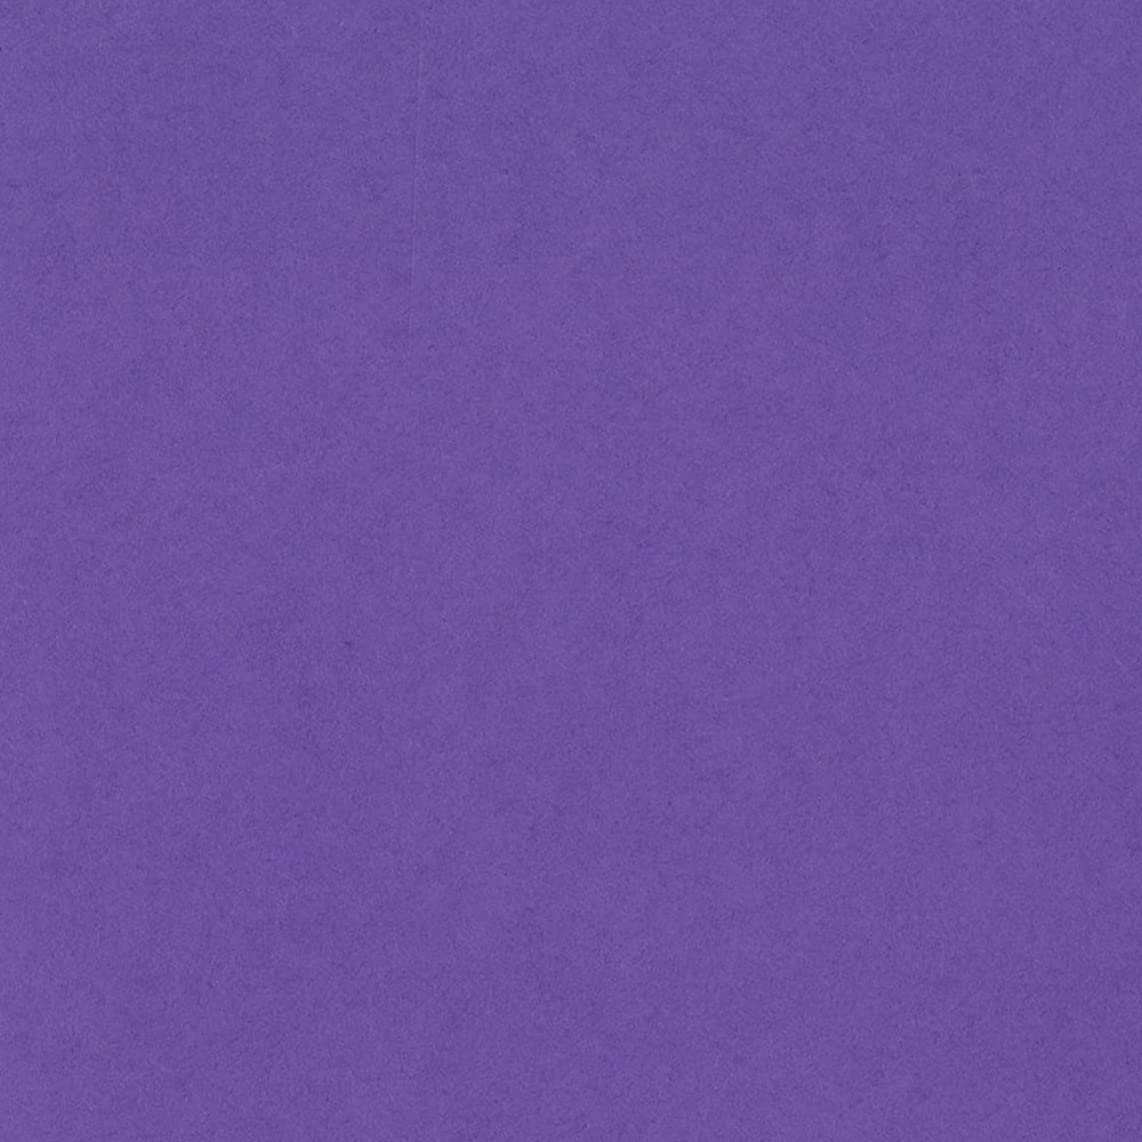 Bazzill Basics T6-6105 Card Shoppe Heavy Weight Cardstock, Gummy Bear, 25 Sheet Pack, 12 x 12 Inches